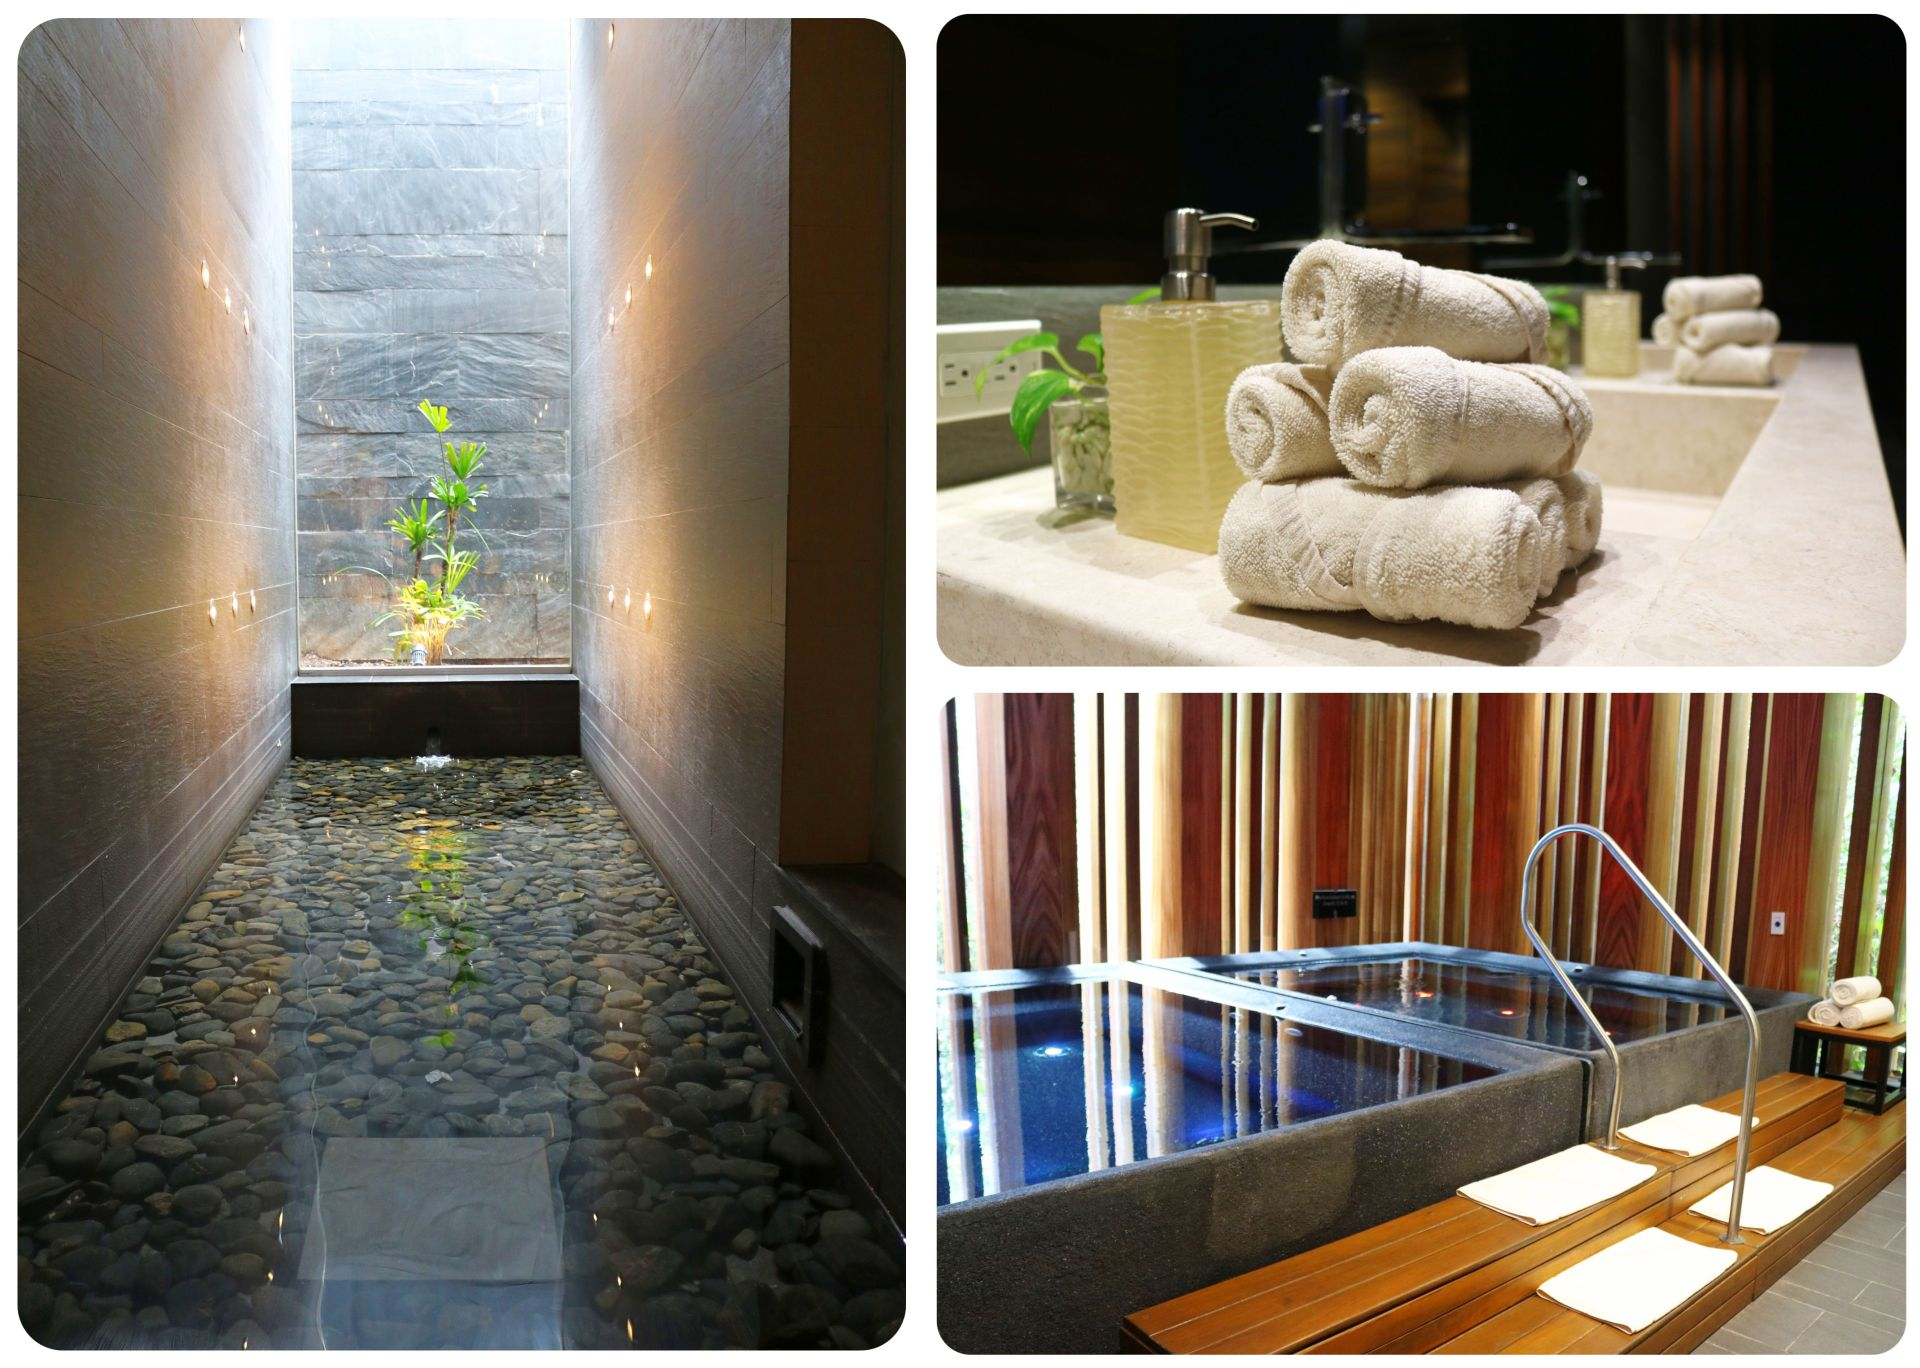 Grand Hyatt Resort Playa del Carmen Cenote Spa